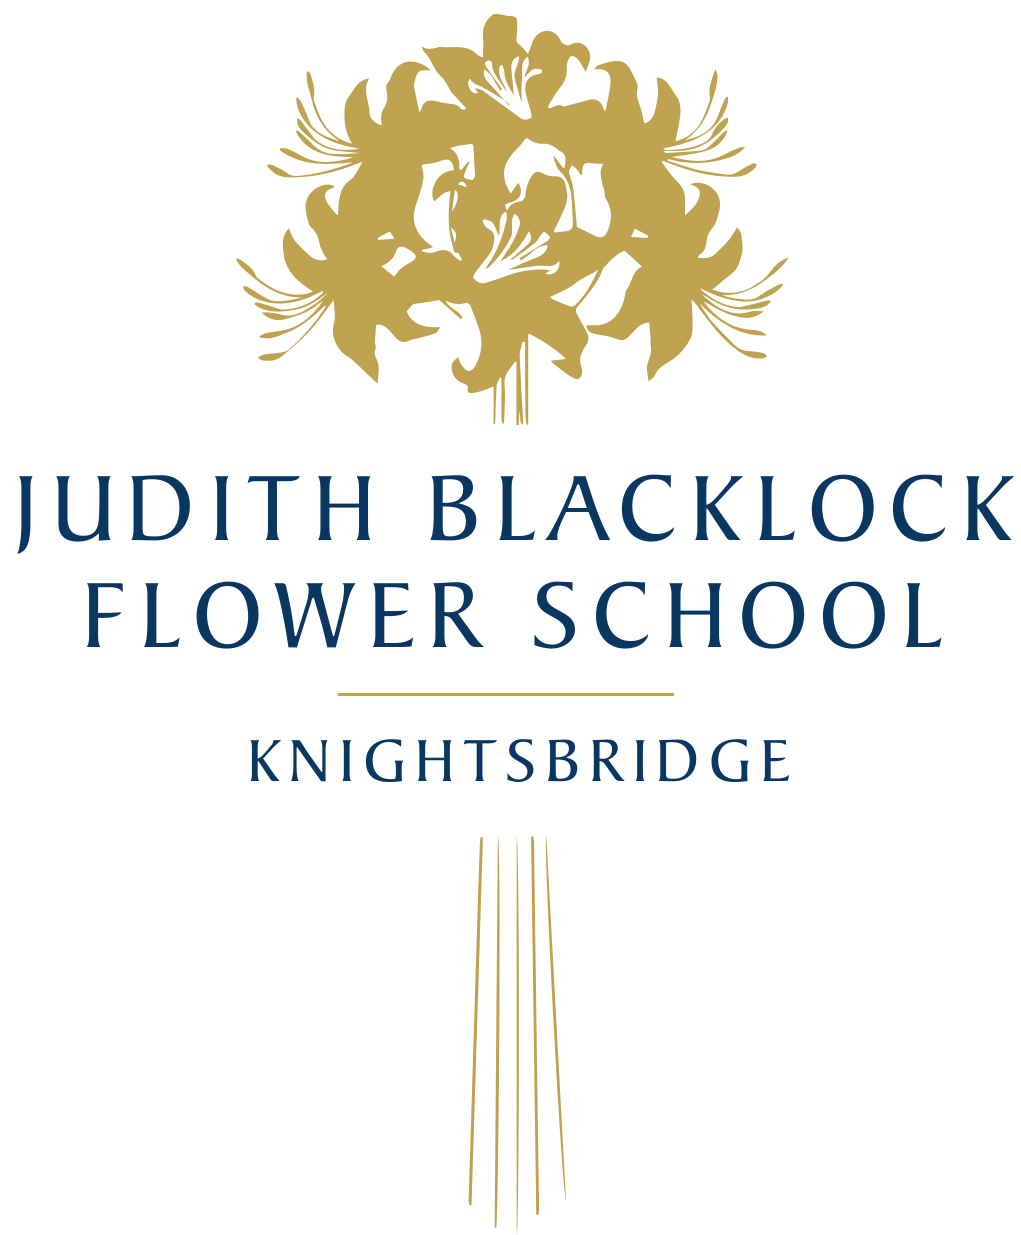 Logo of Judith Blacklock Flower School